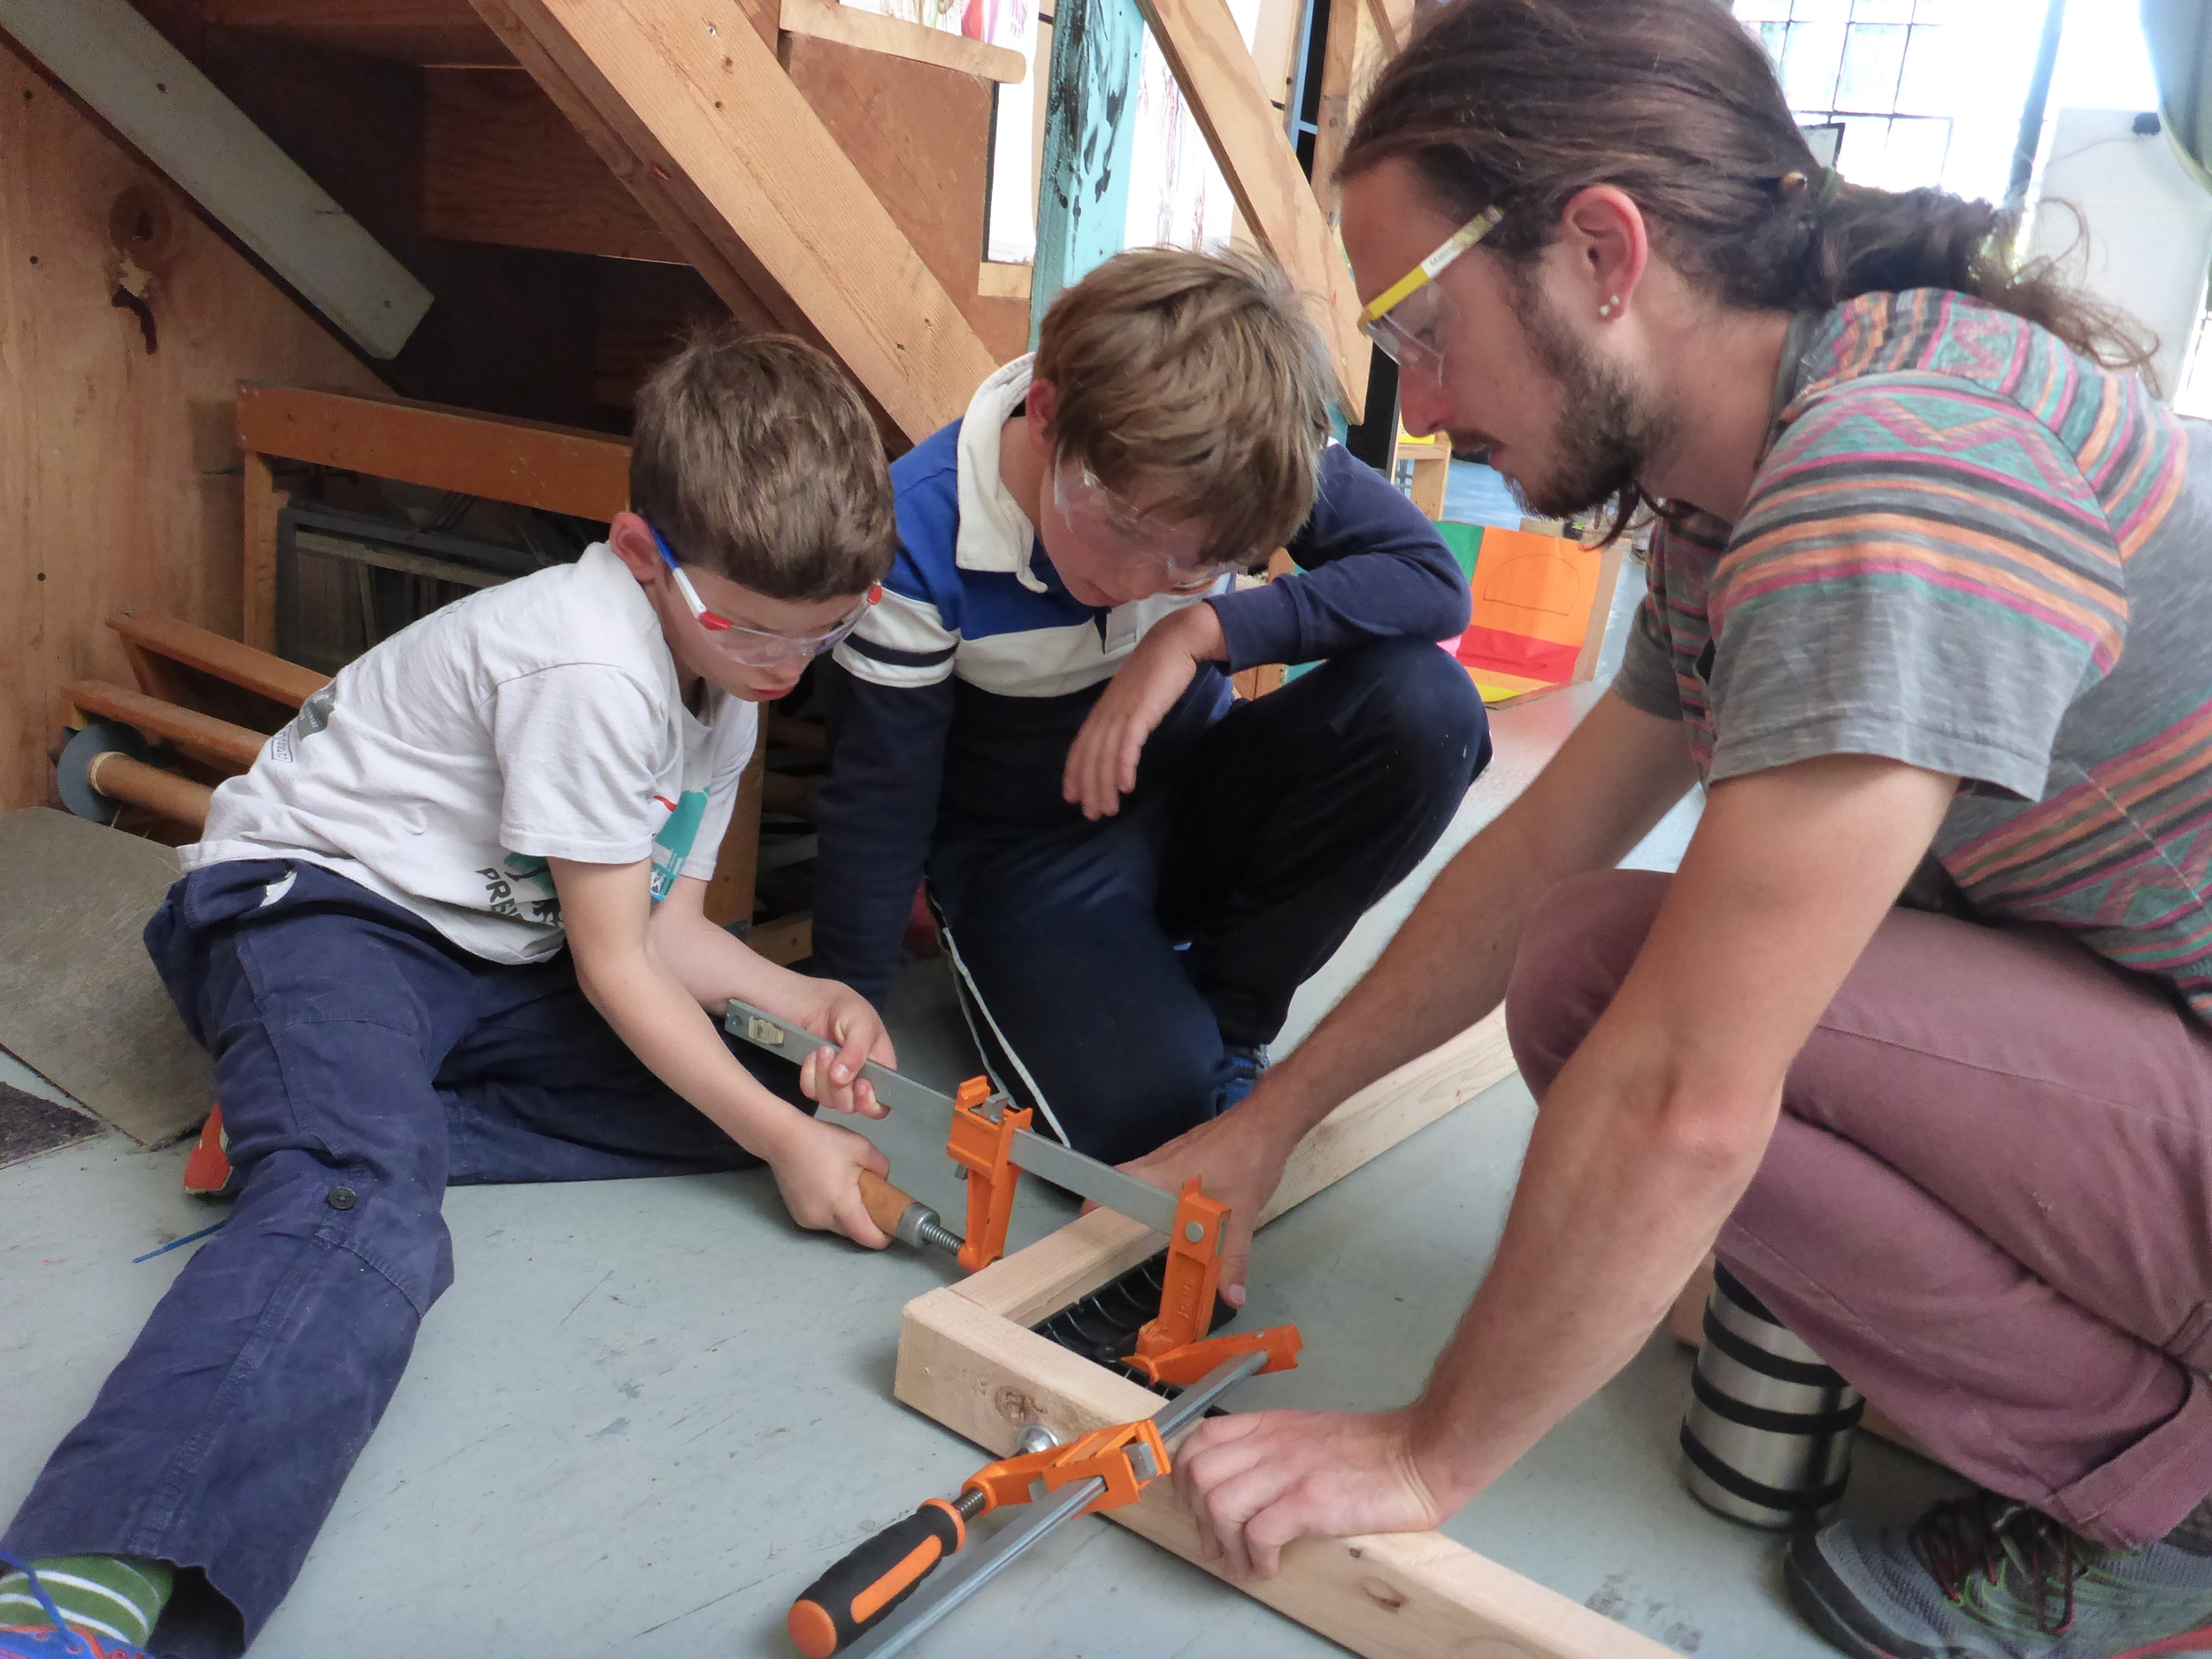 Casper, Alex and Evan figure out how to use the clamps and a square to make a nice square corner.